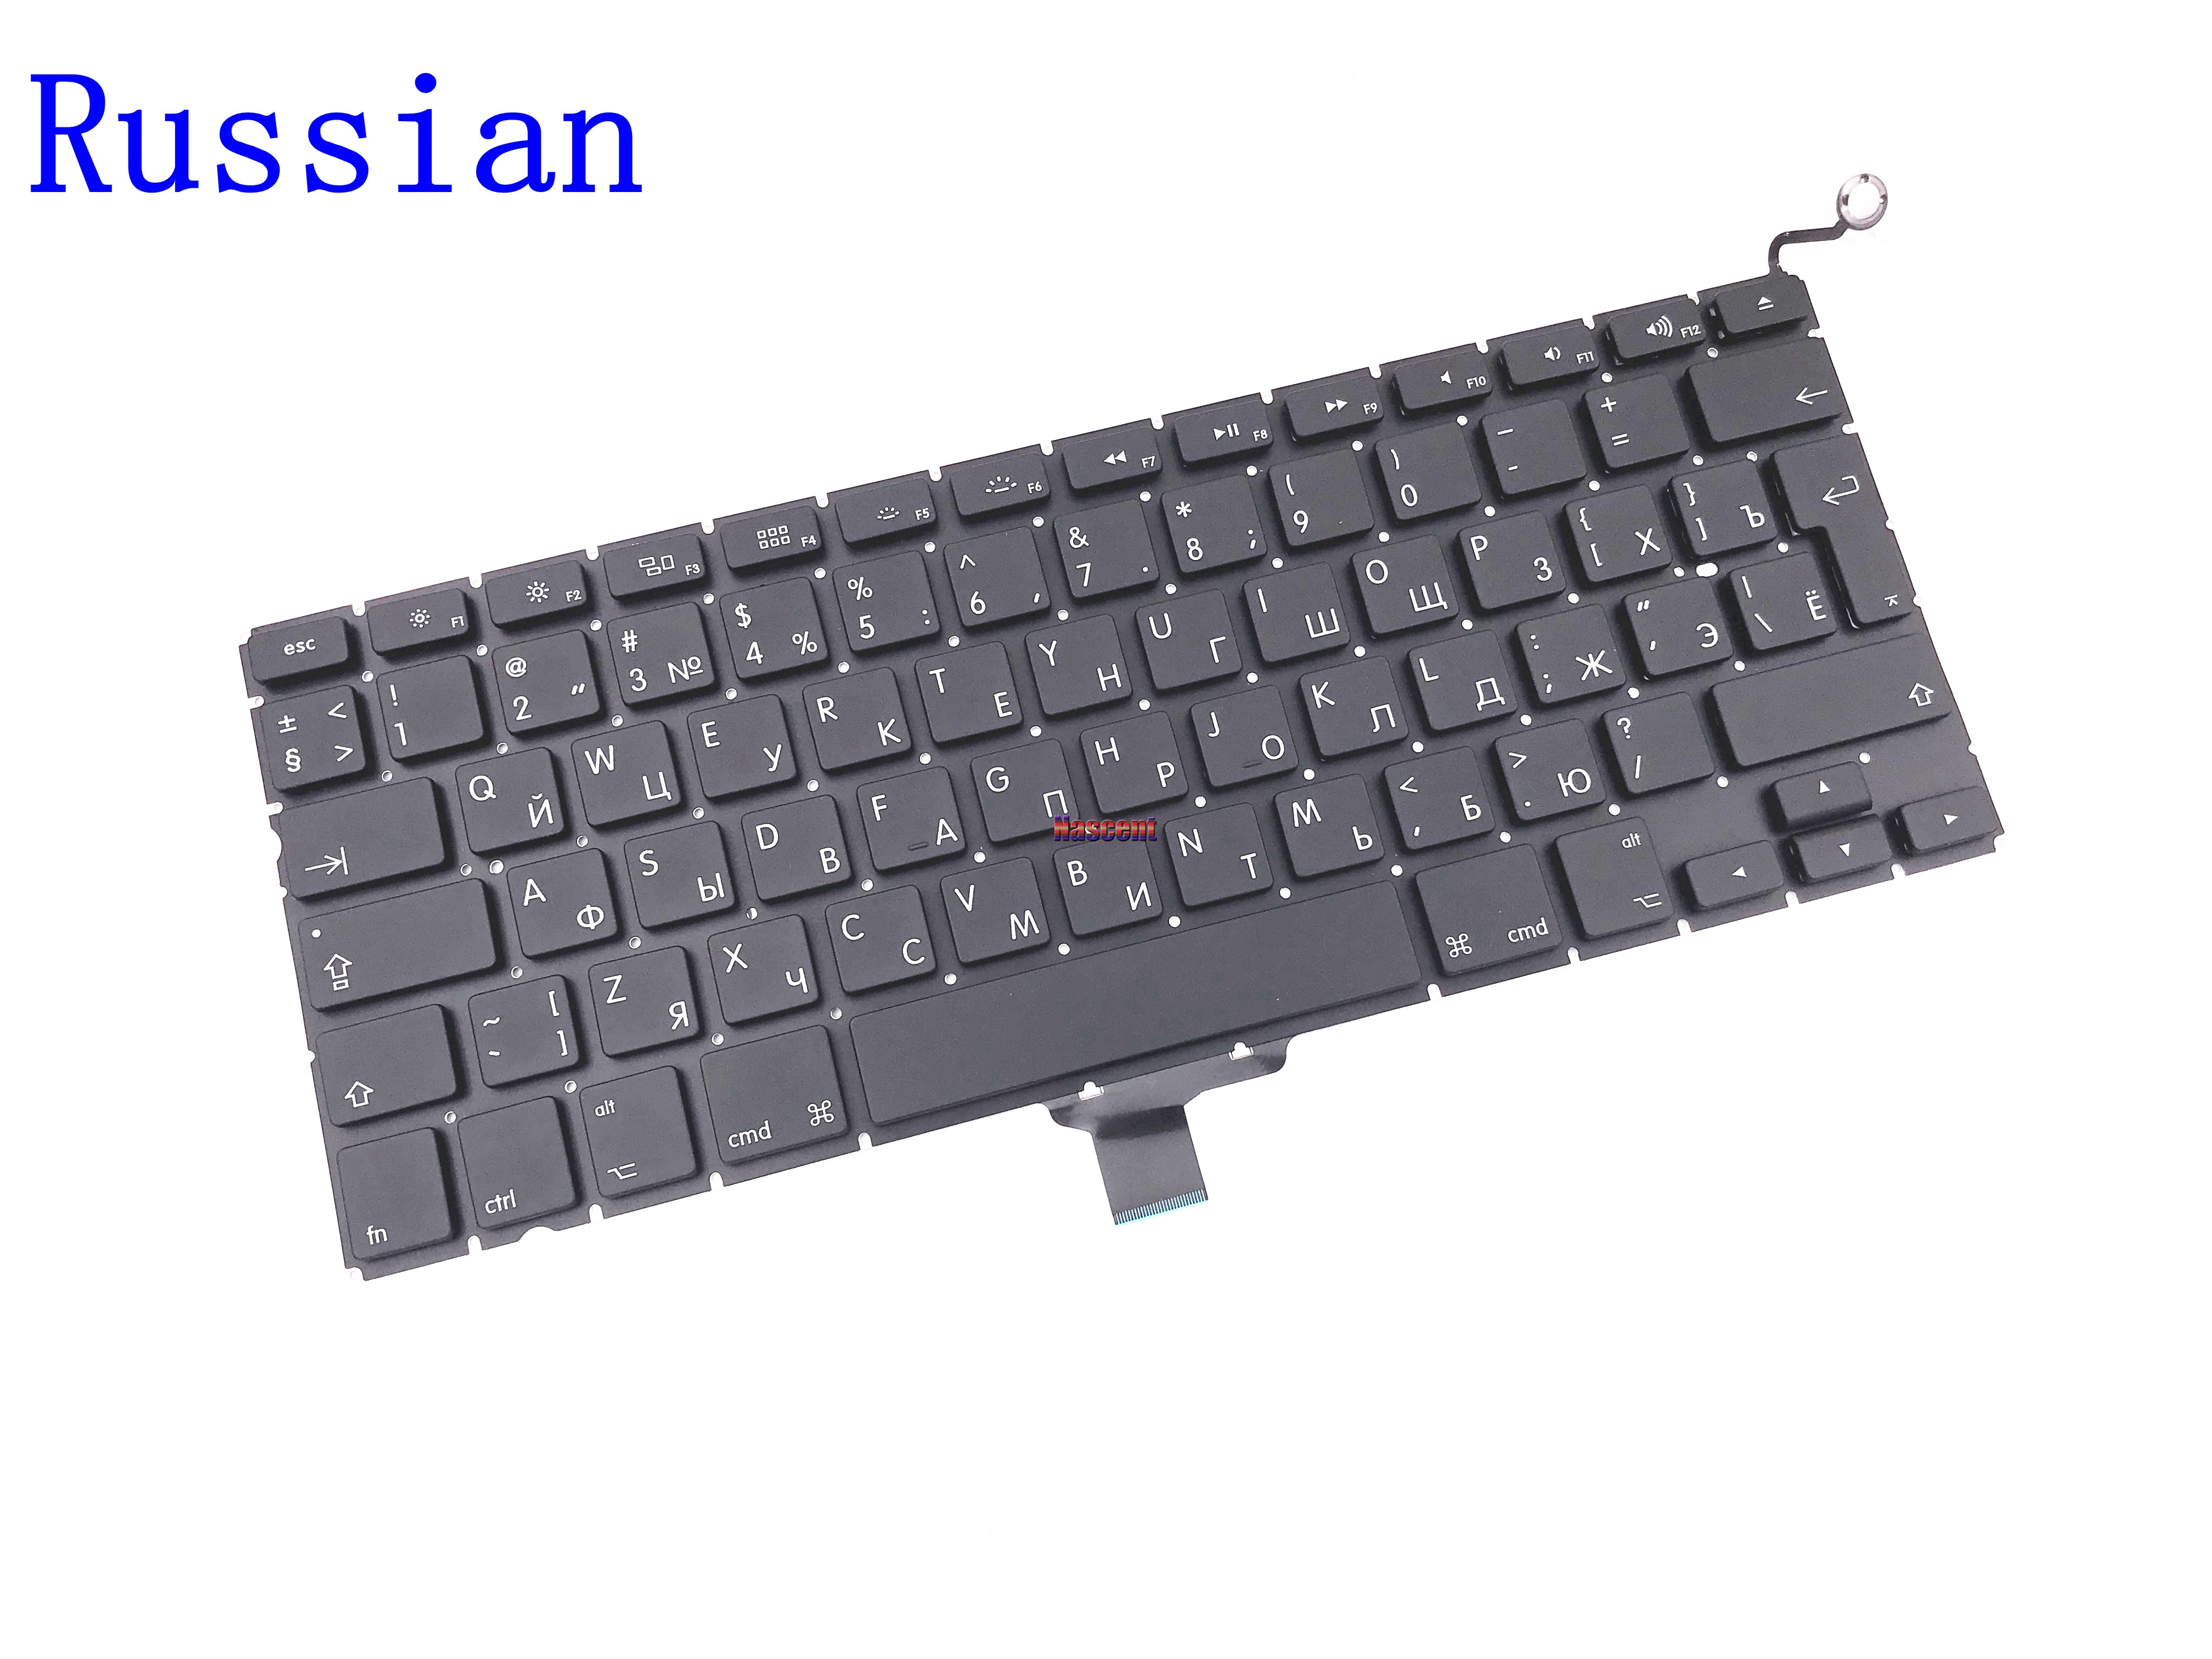 Russian A1278 keyboard with backlight for Macbook pro 13.3 inches laptop MD101 MD 102 keyboards with